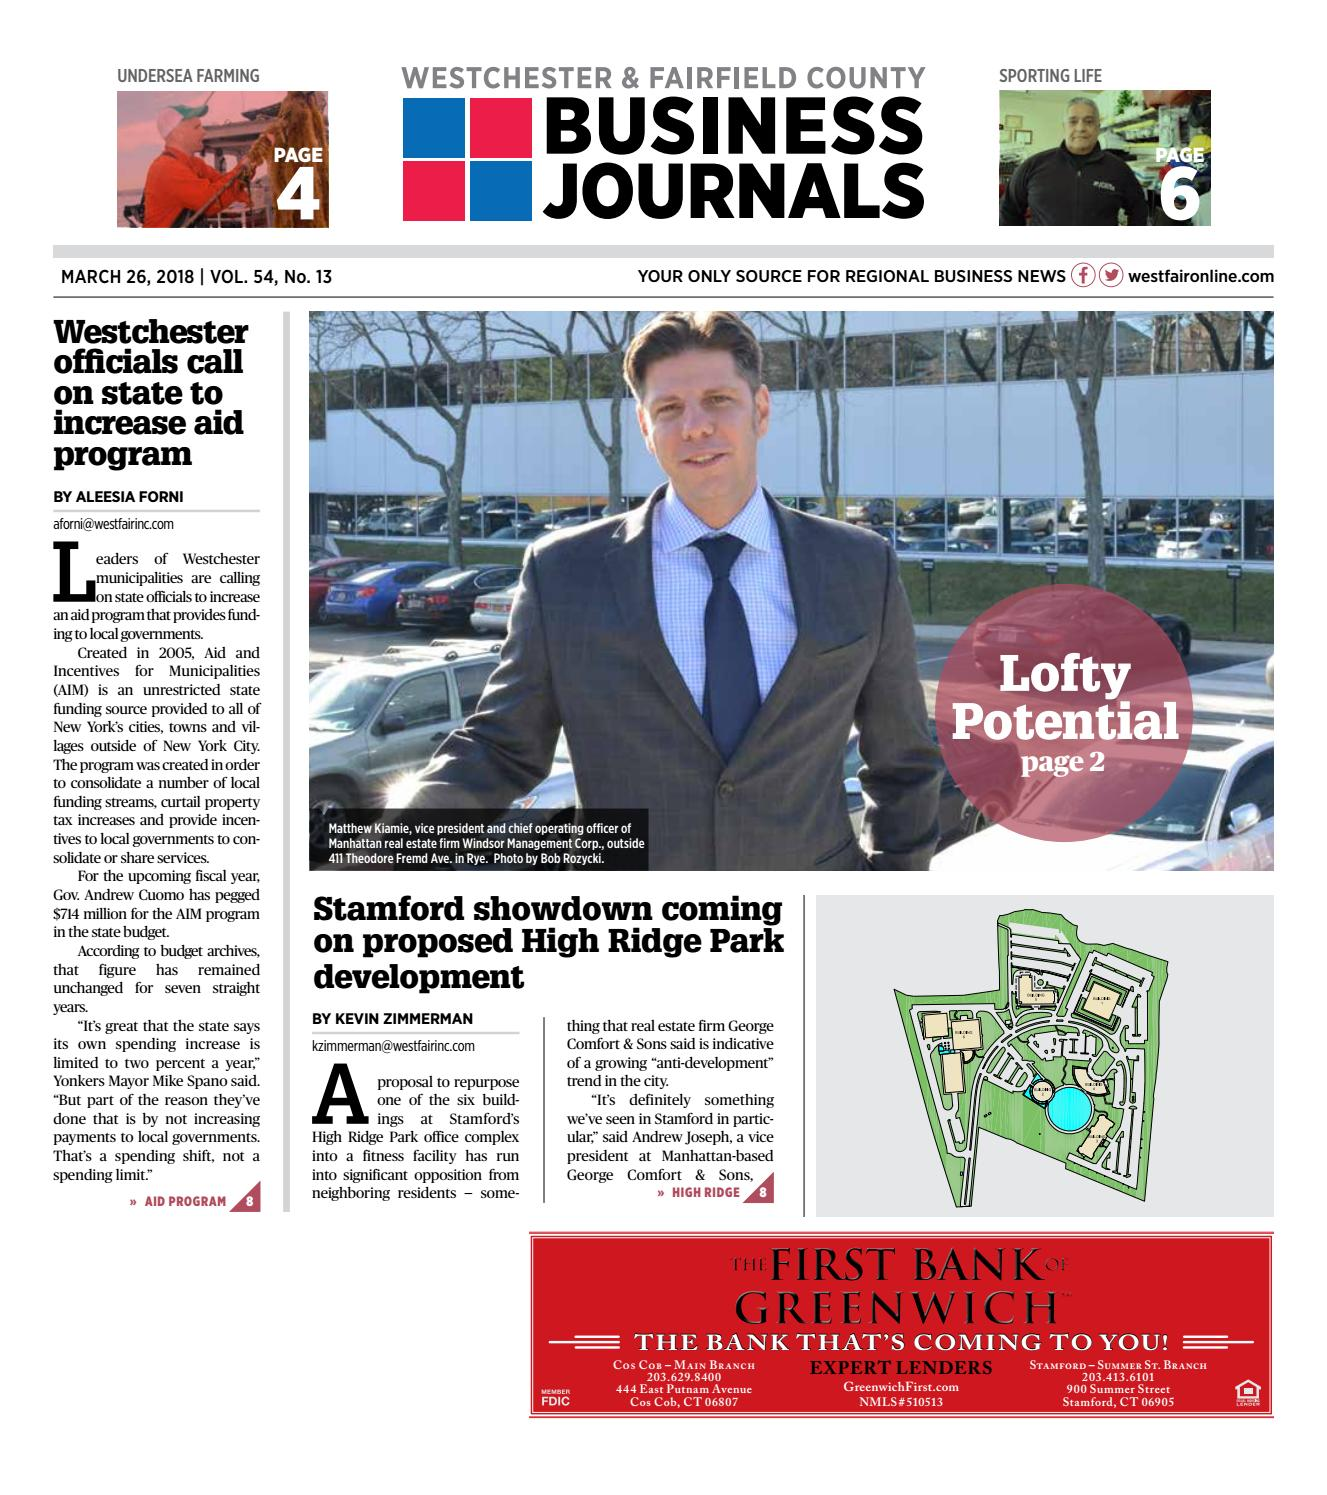 bd52e4b75 Westchester and Fairfield County Business Journals 032618 by Wag Magazine -  issuu